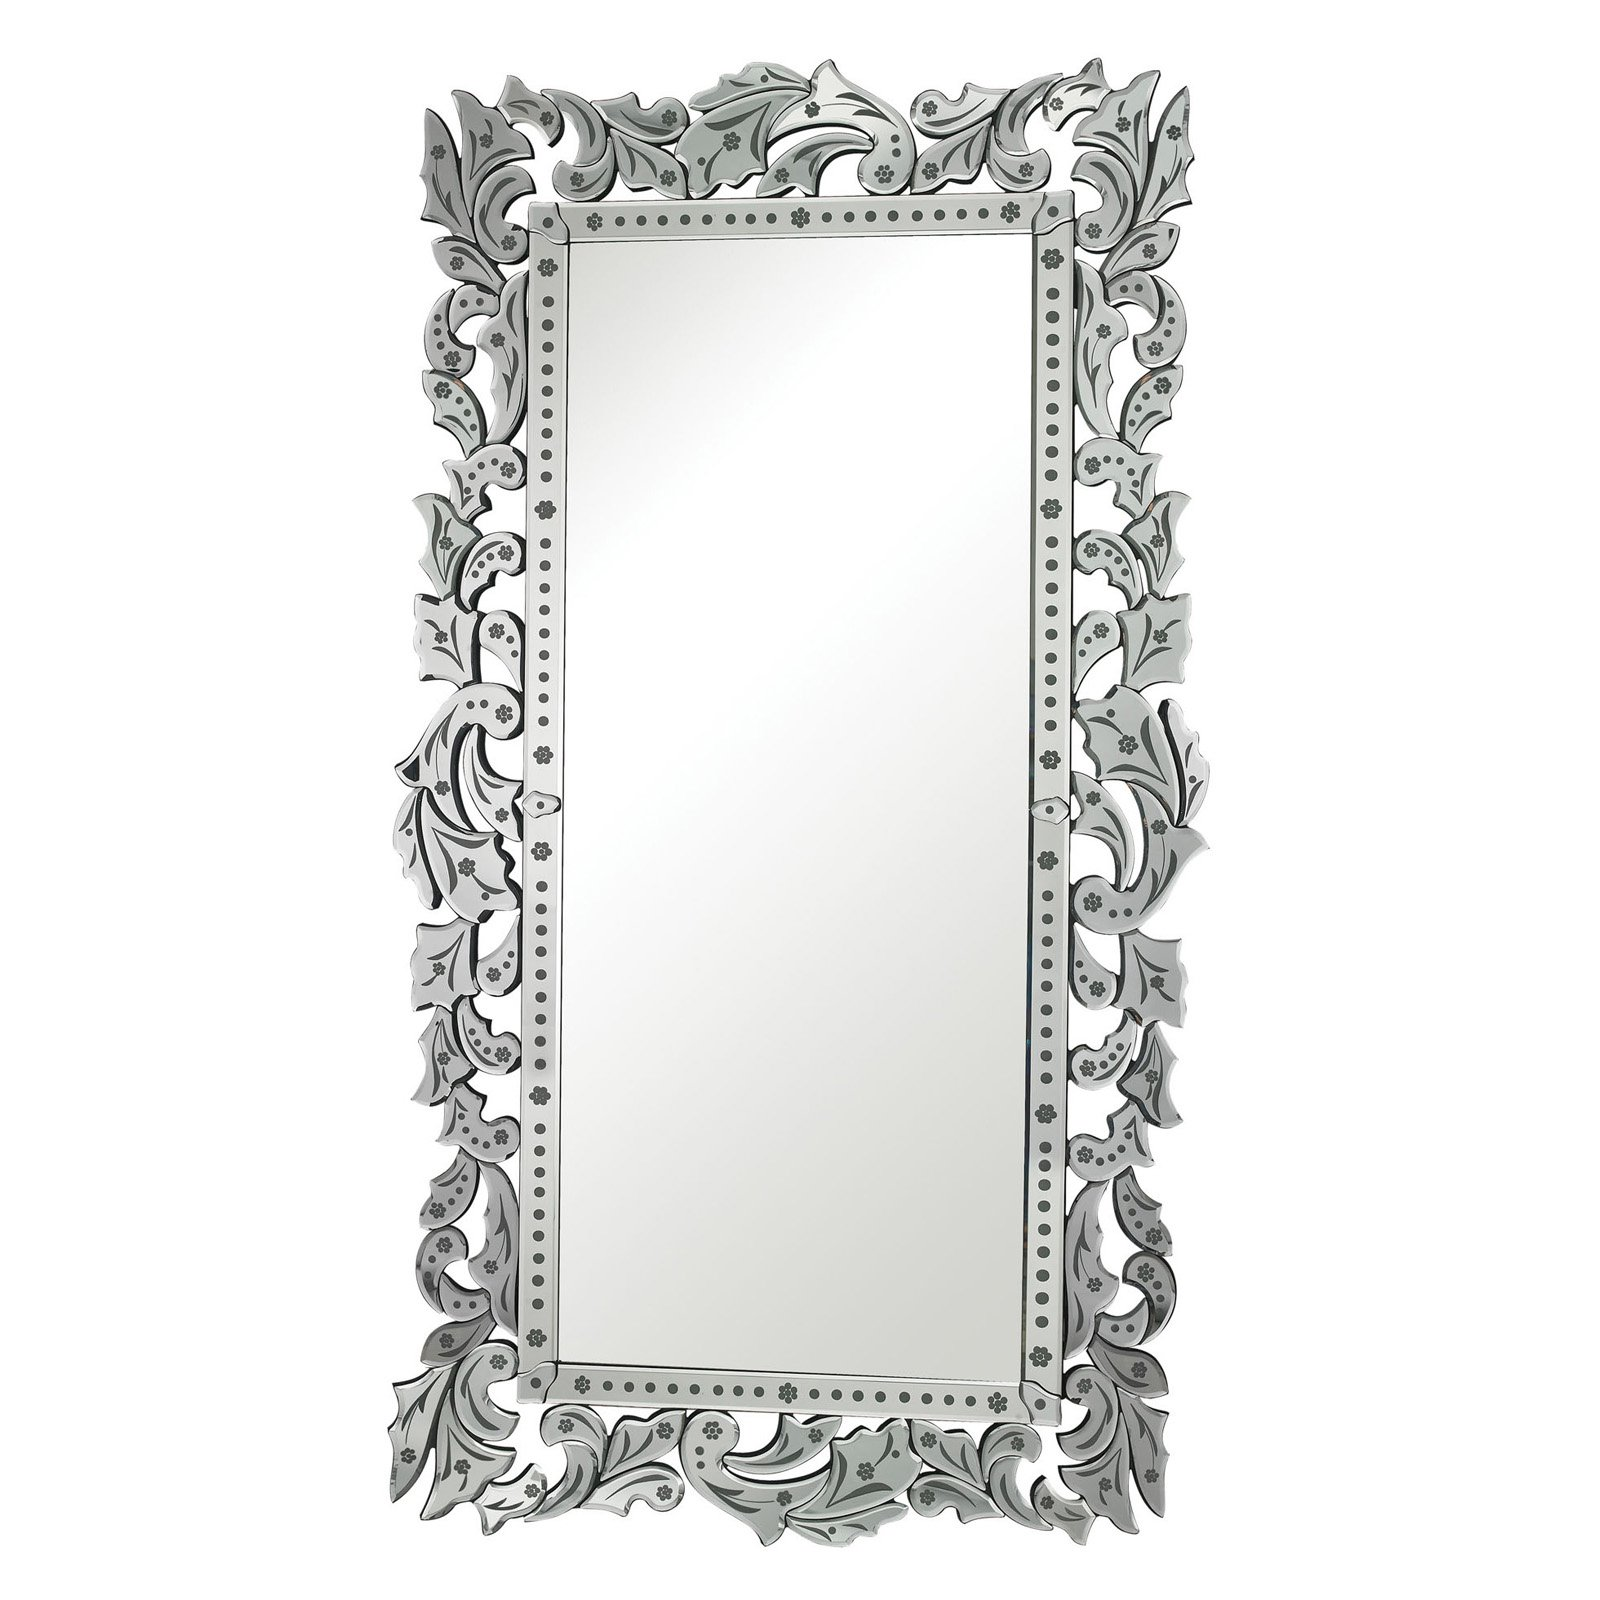 Sterling Reede Venetian Wall Mirror - 40W x 72H in.